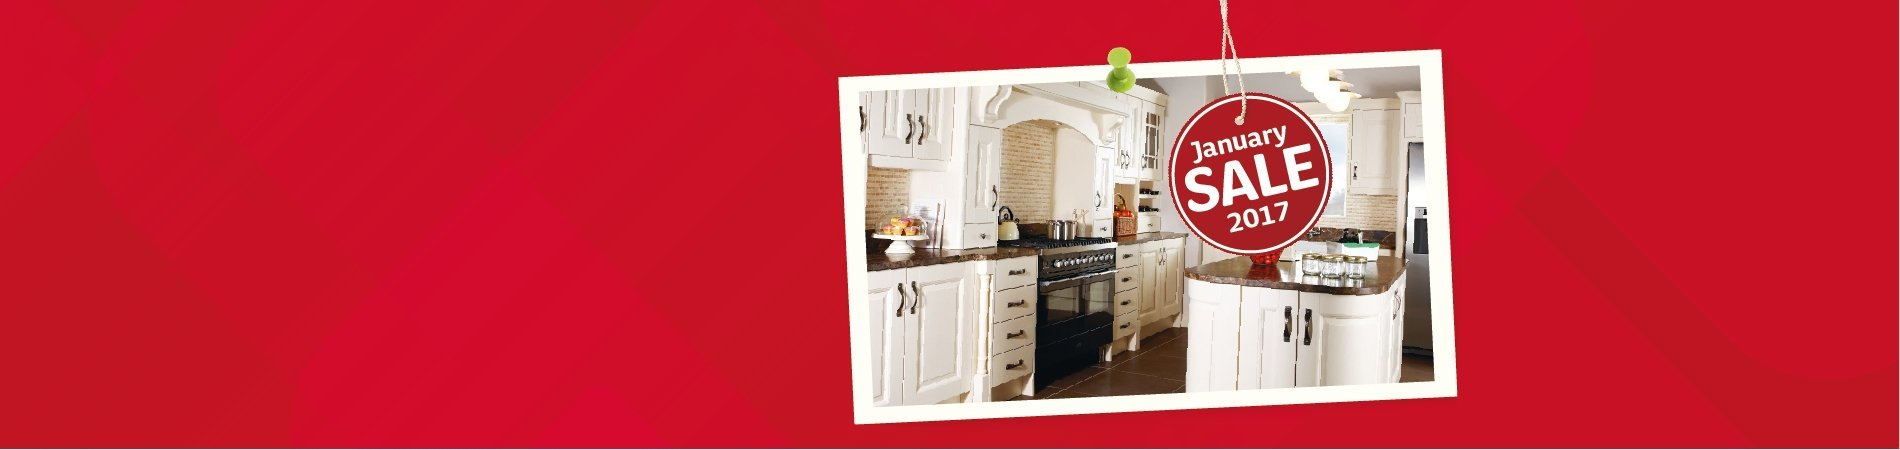 january-sale-kitchens